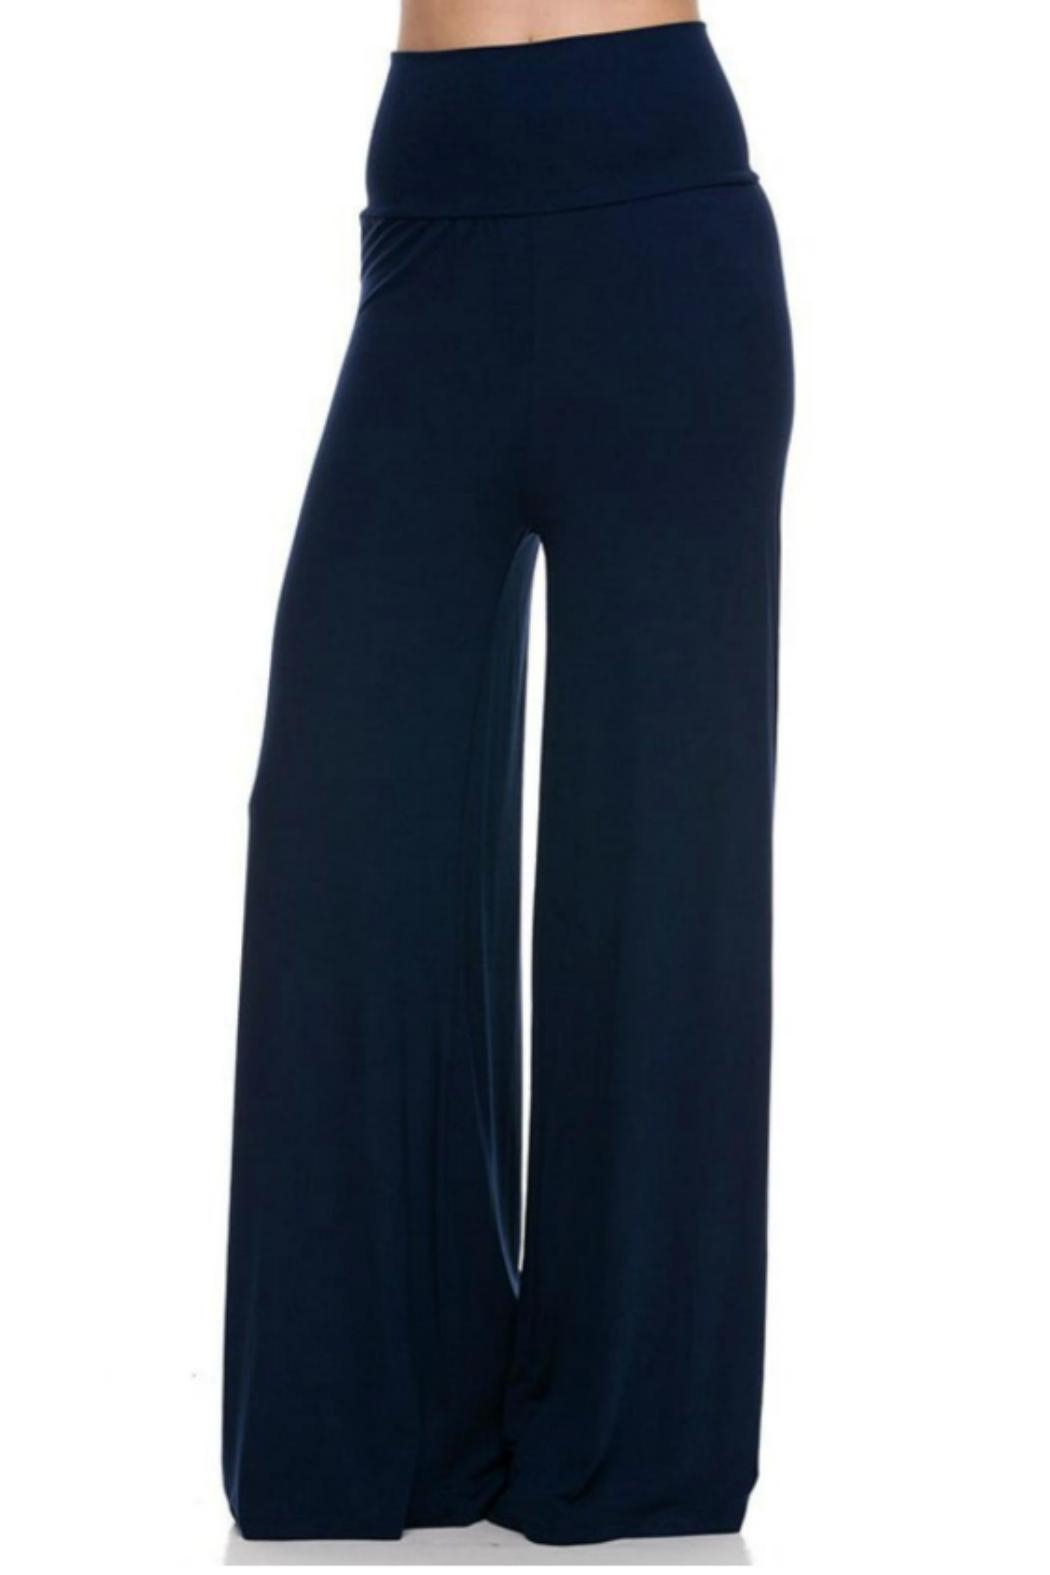 Lovetree Linen Palazzo Pants - Front Cropped Image